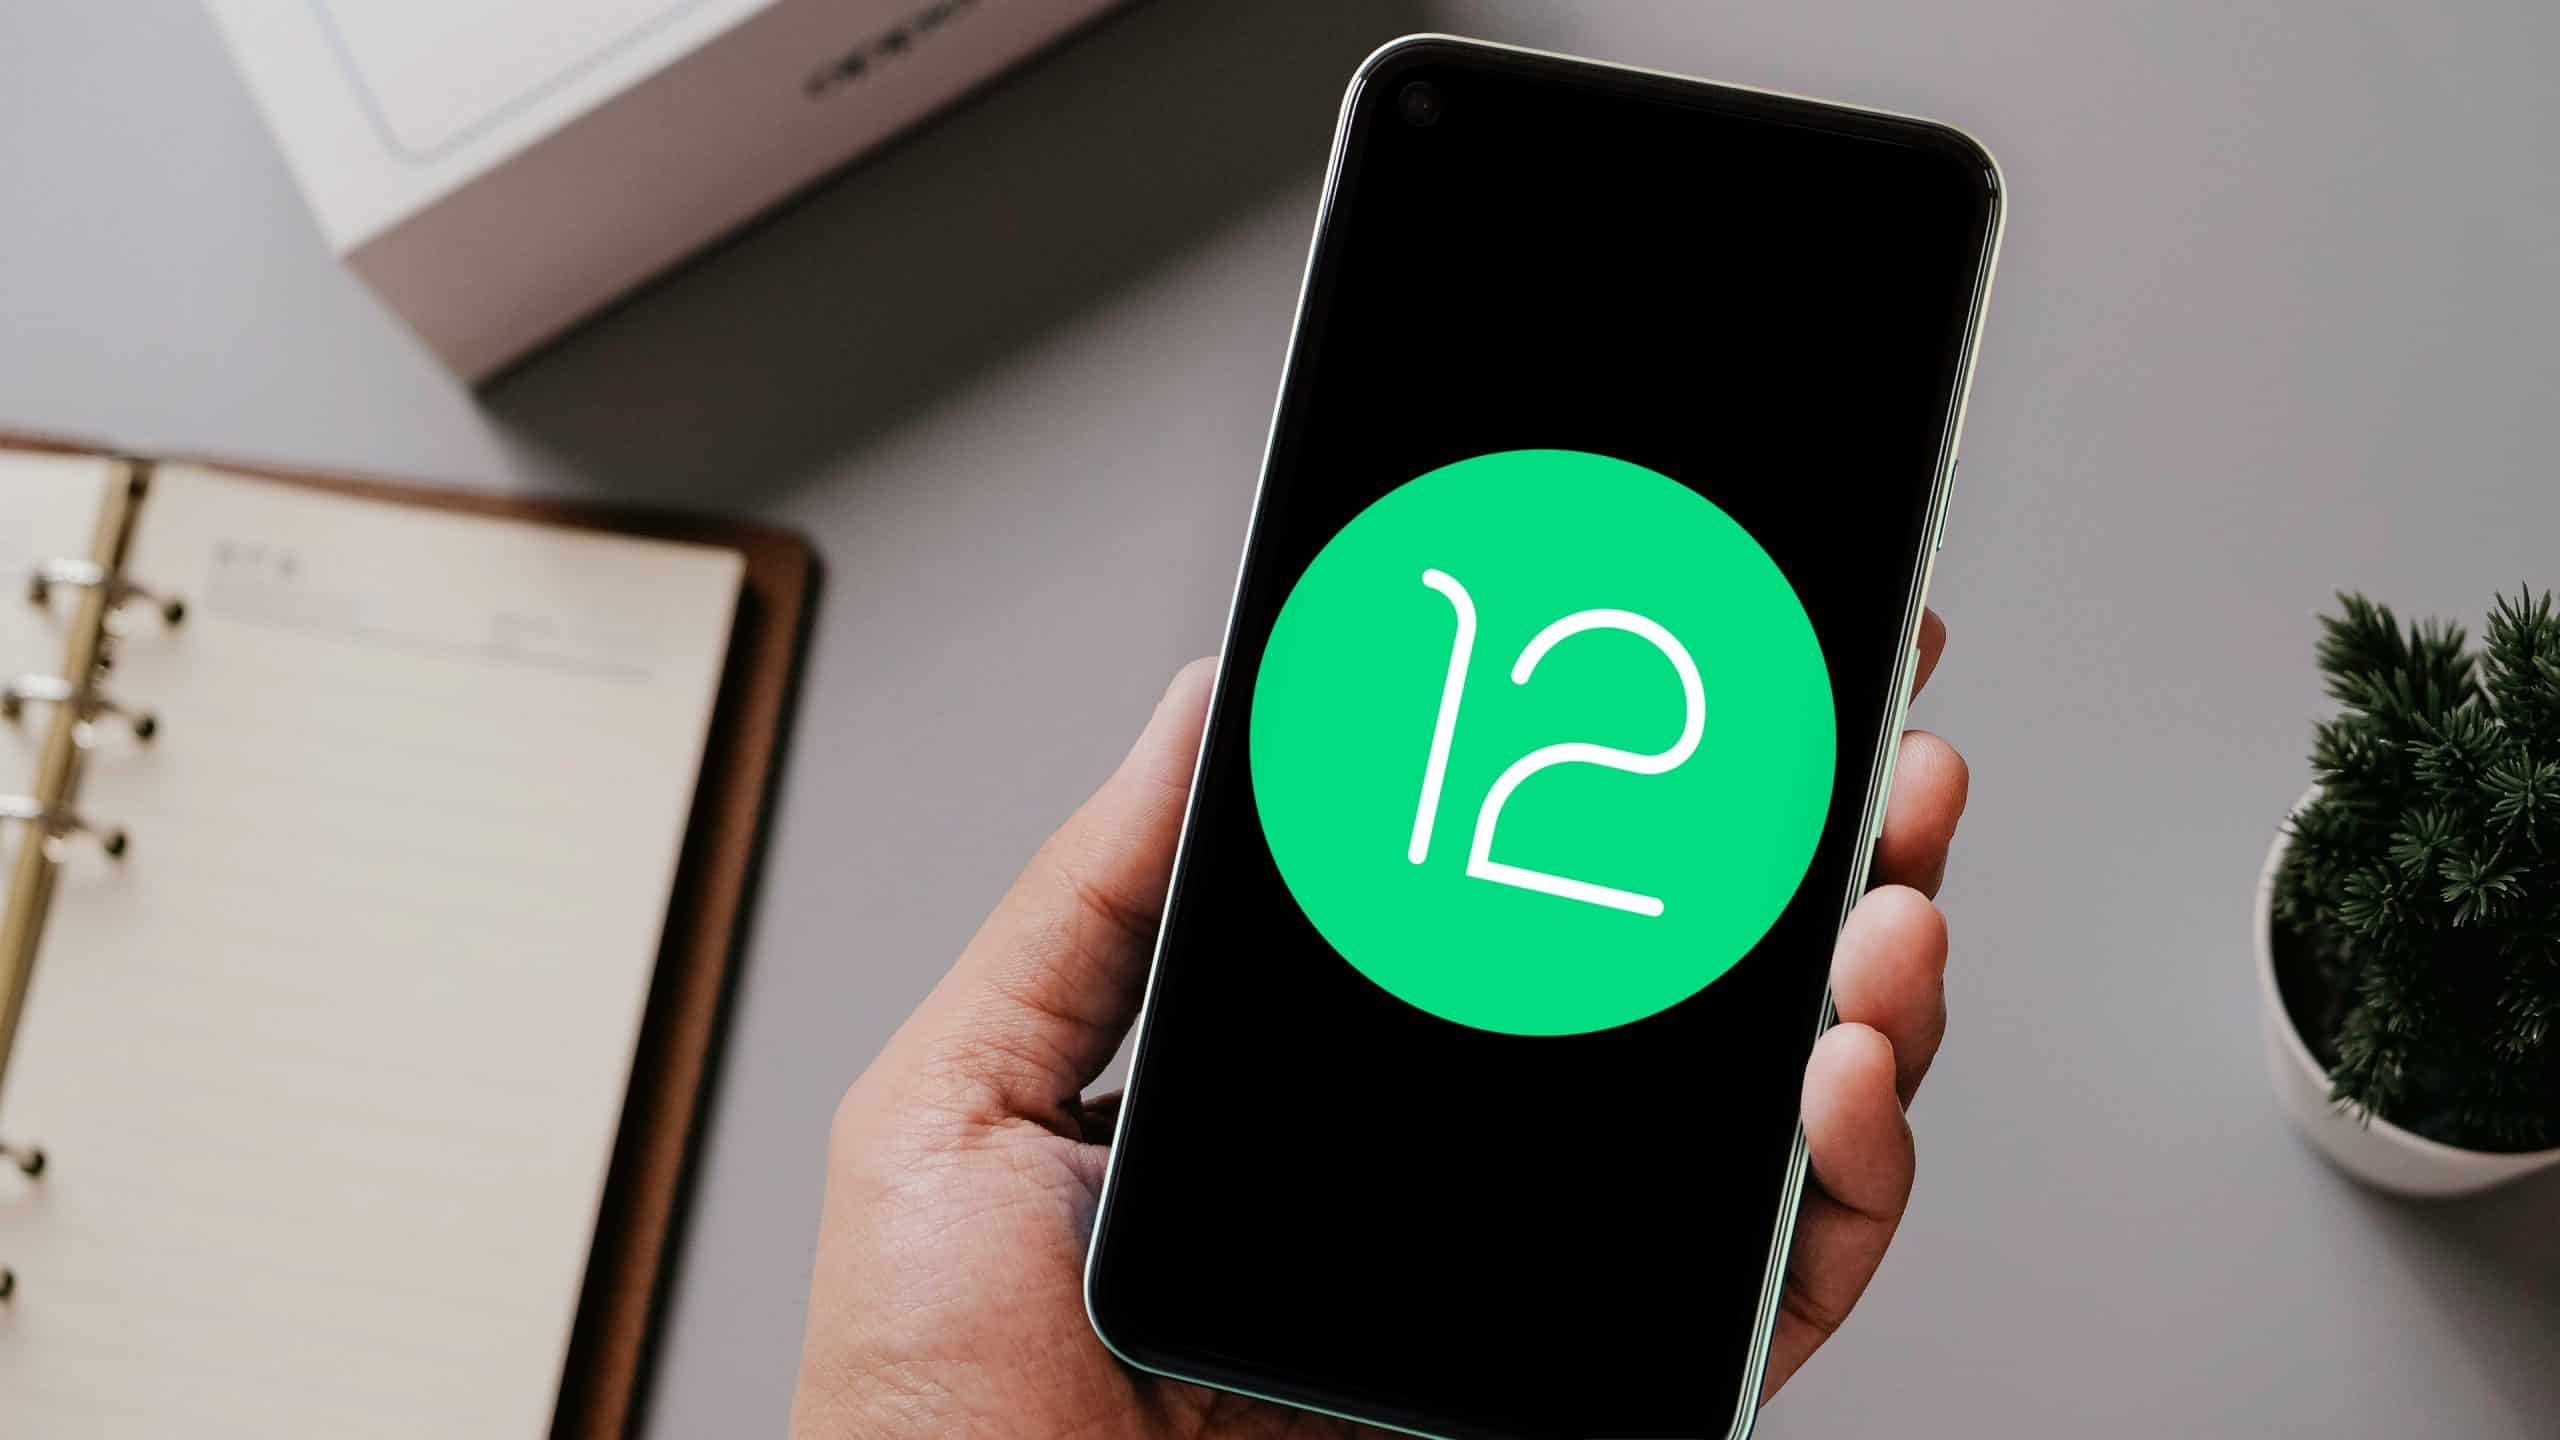 Android 12: Public beta download, new exciting features, and more